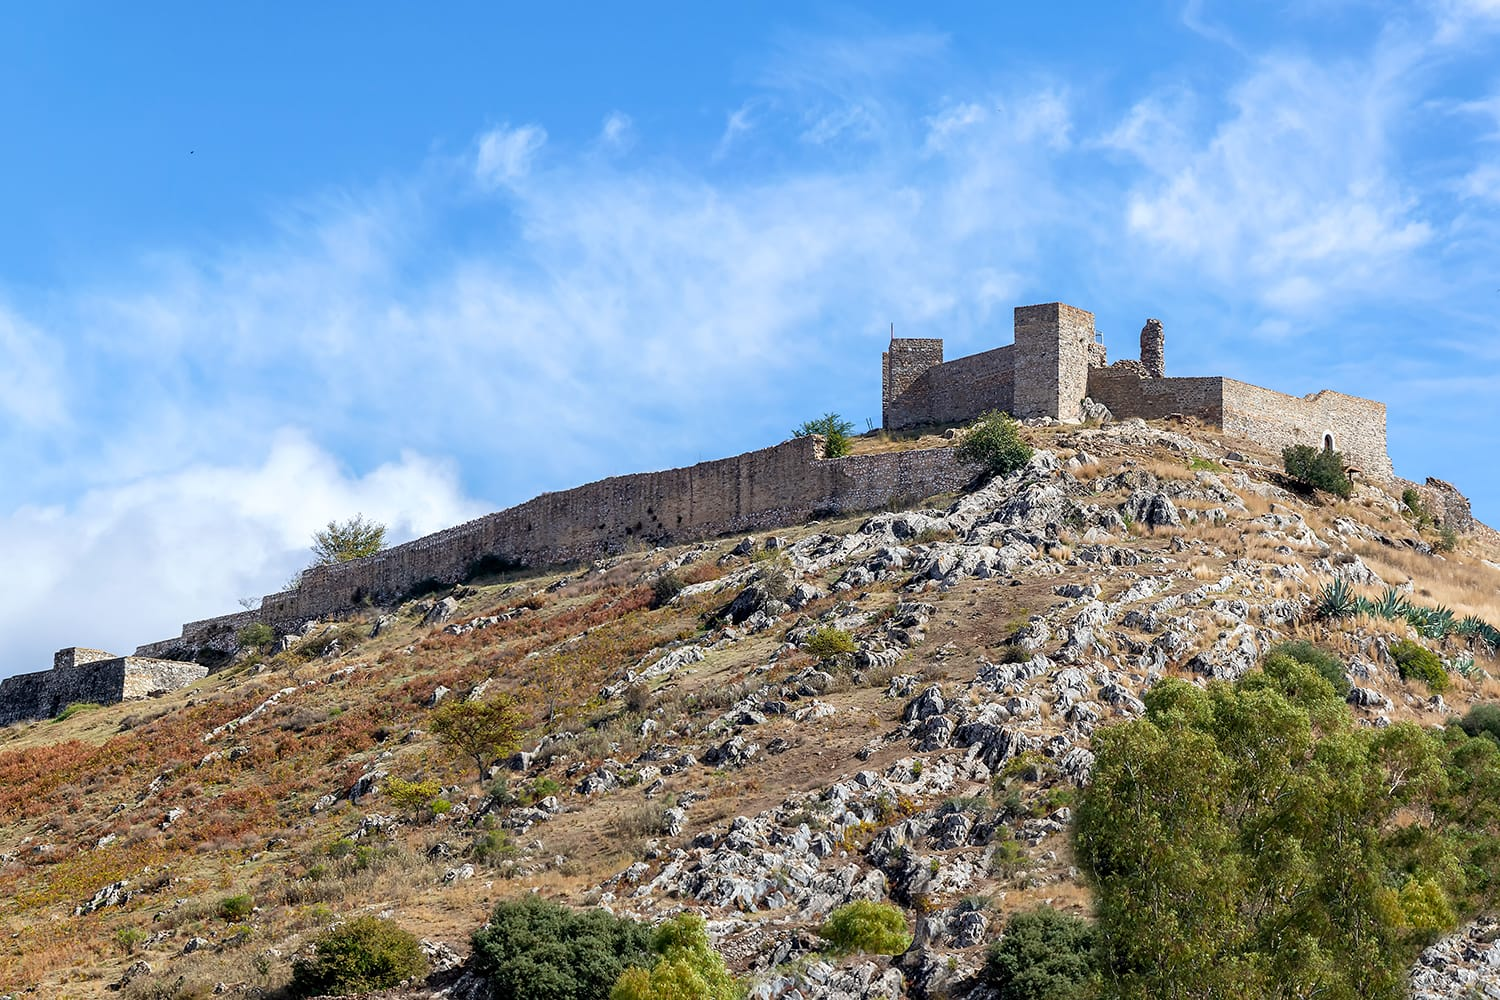 The Aracena castle built between the 13th and 15th centuries over the ruins of an older Moorish Castle